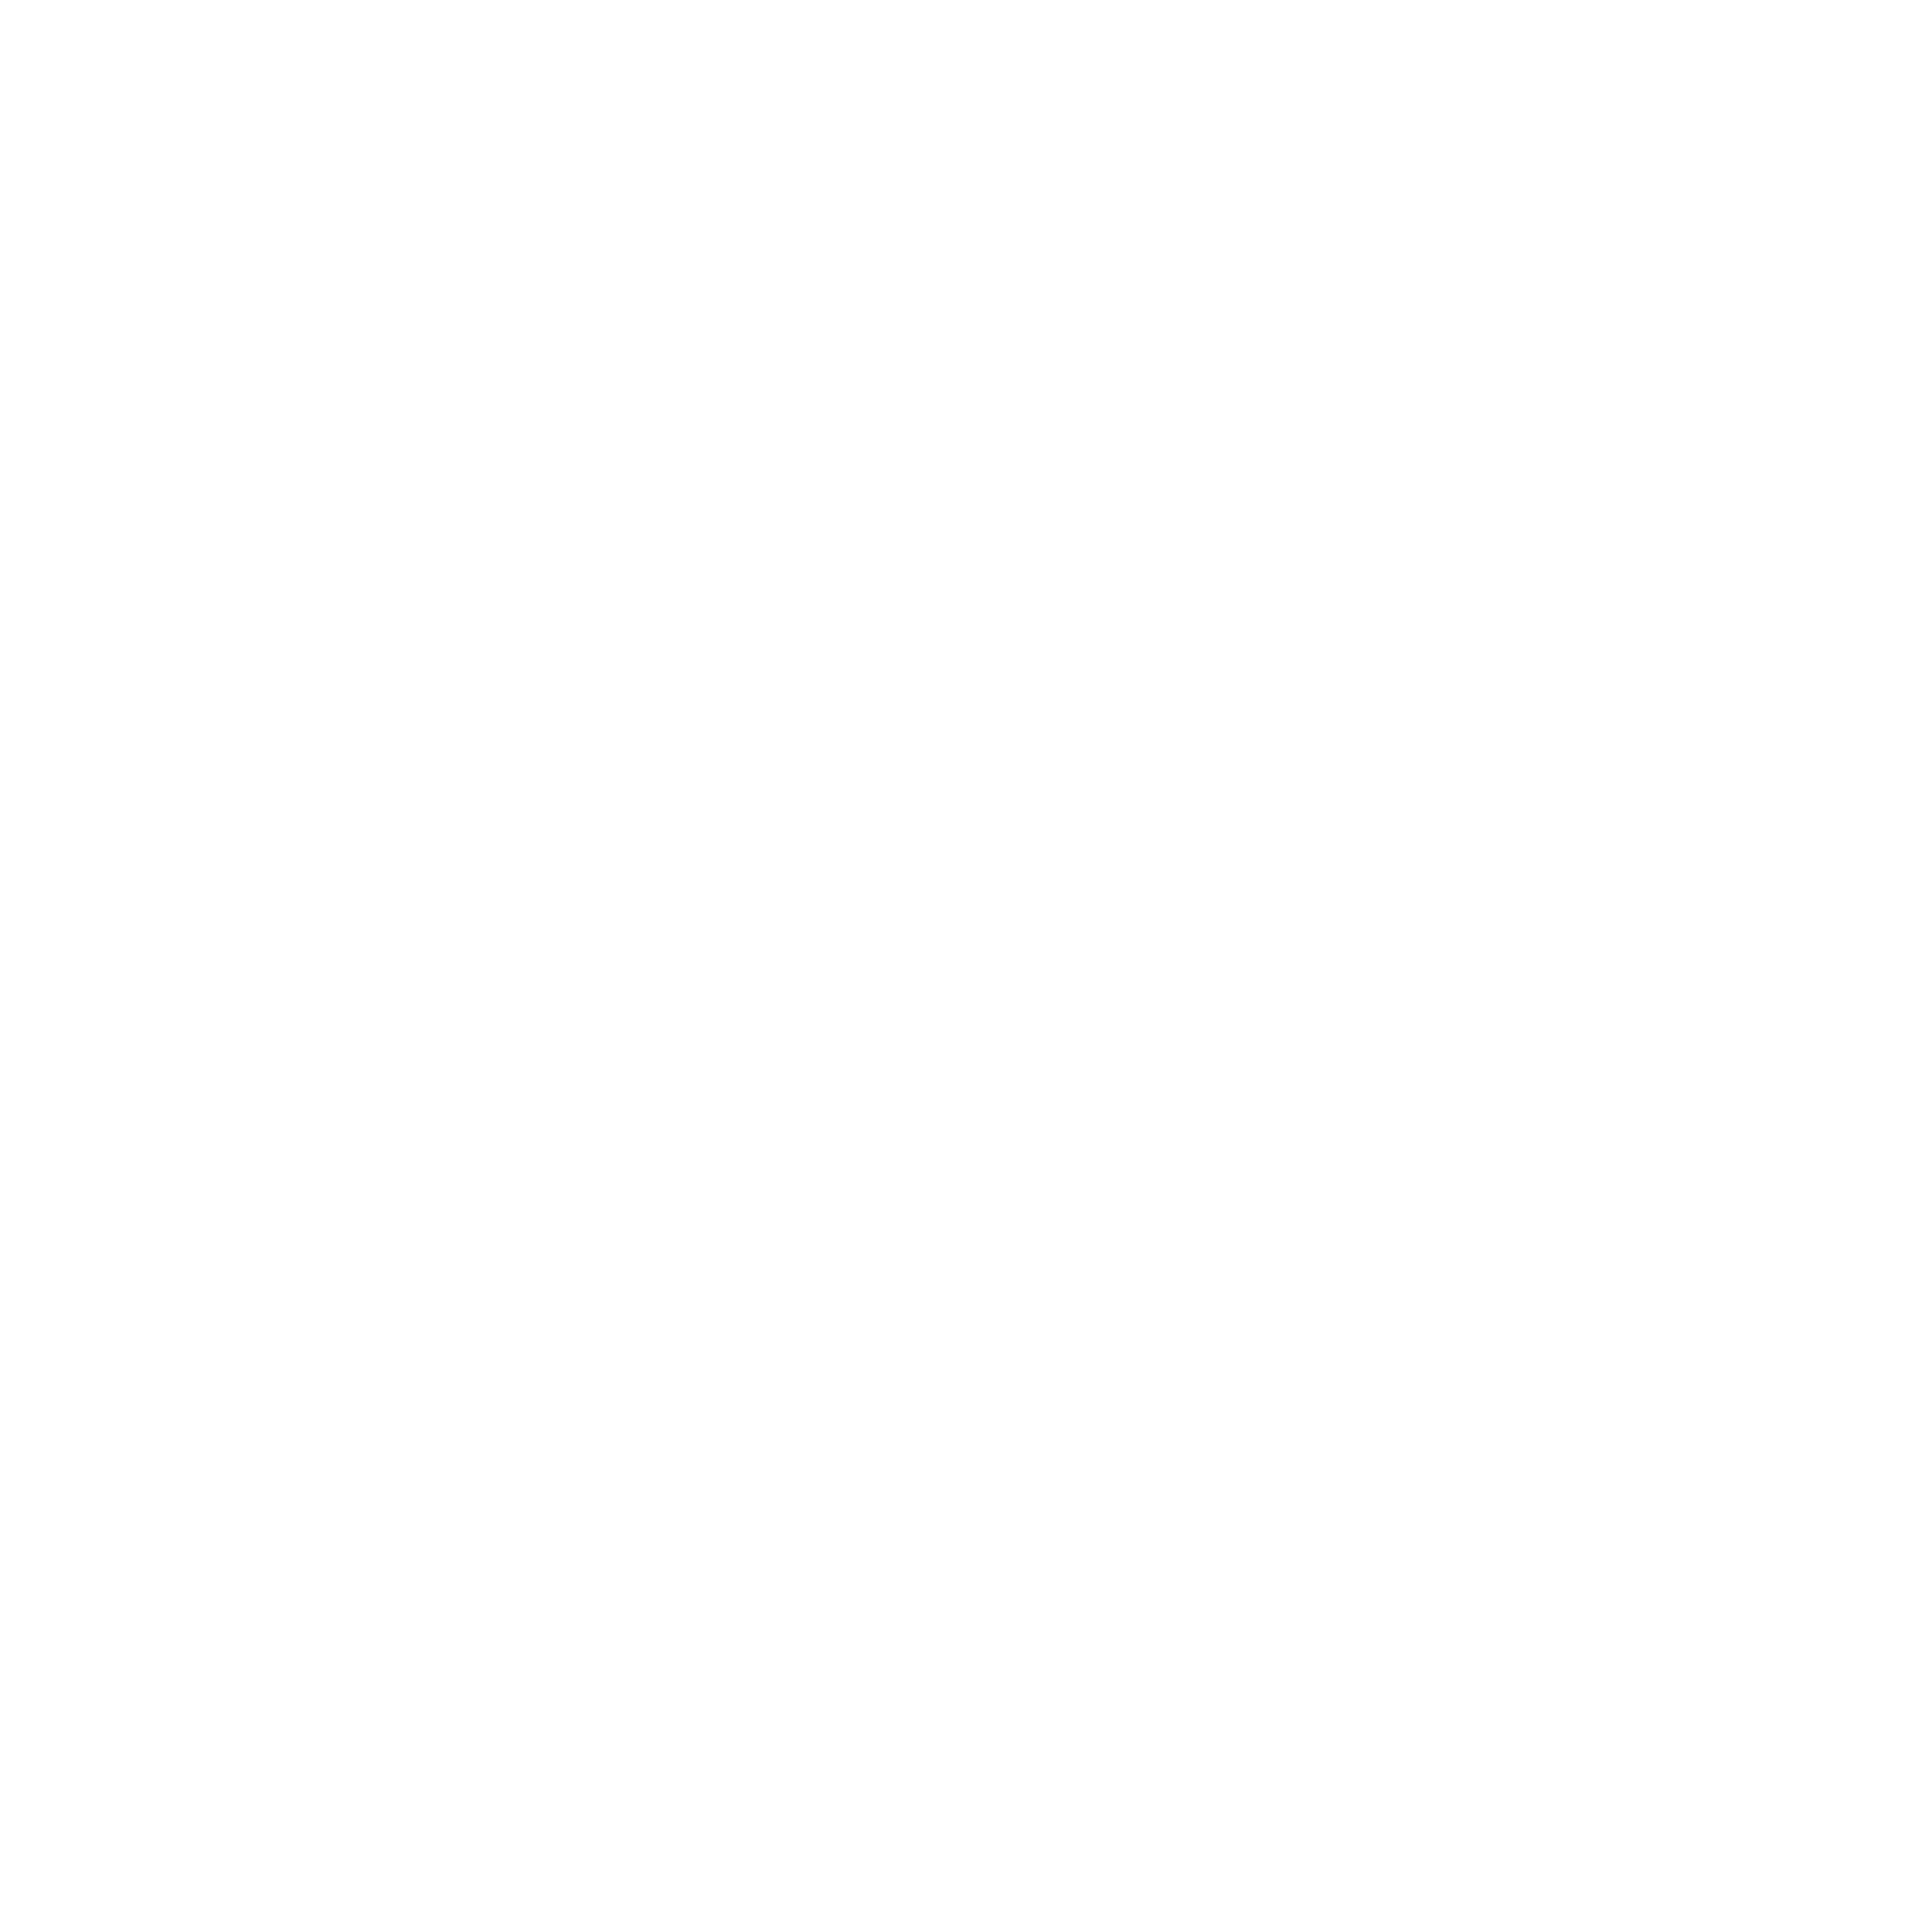 roaster La Colombe's logo